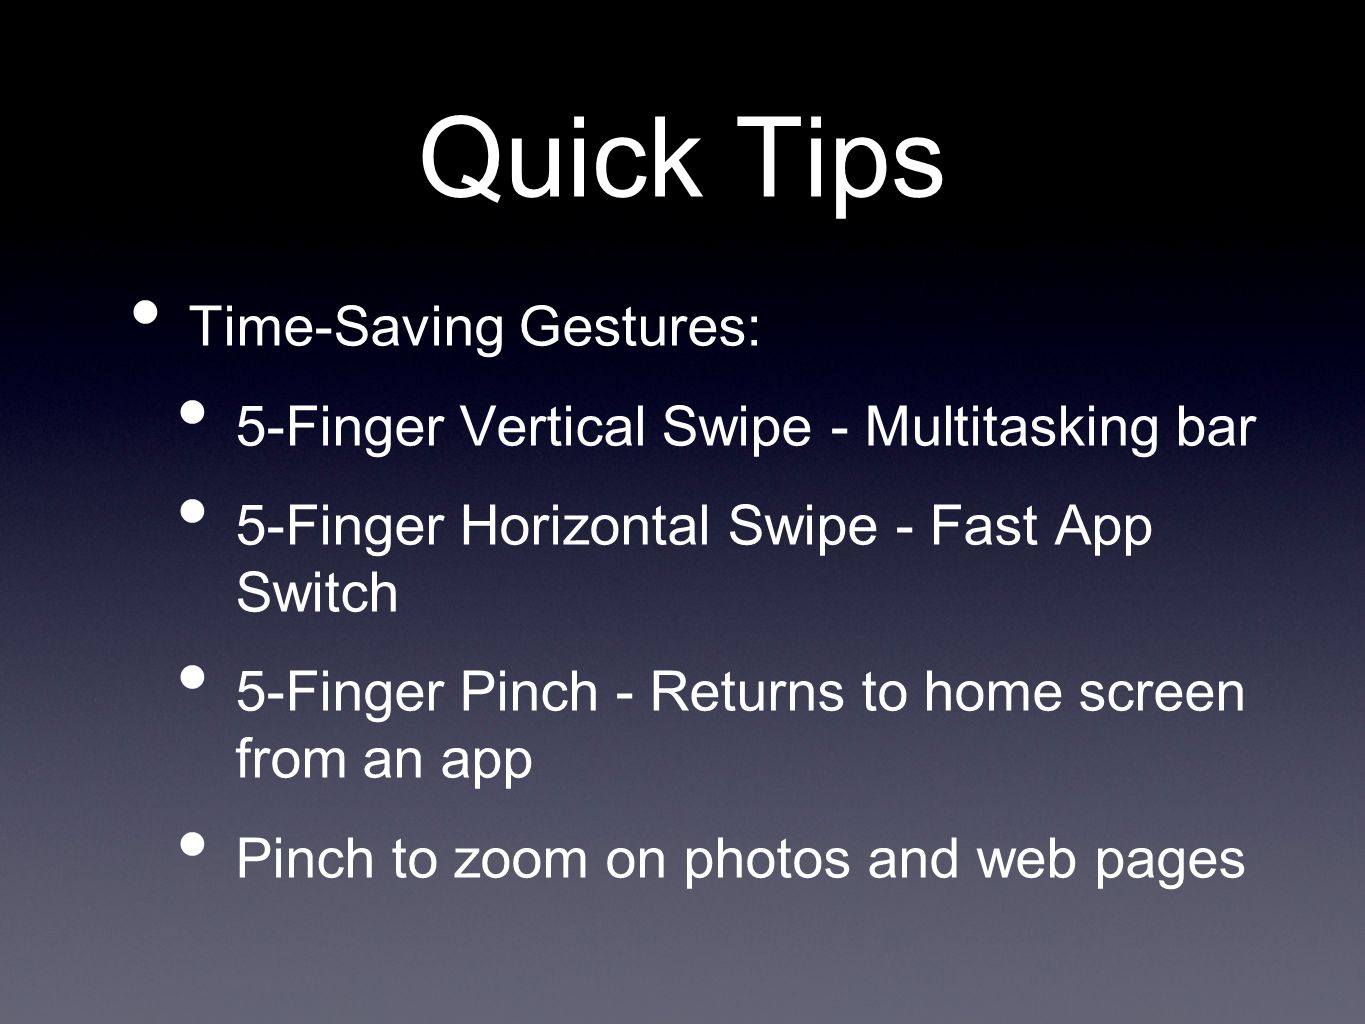 Quick Tips Time-Saving Gestures: 5-Finger Vertical Swipe - Multitasking bar 5-Finger Horizontal Swipe - Fast App Switch 5-Finger Pinch - Returns to home screen from an app Pinch to zoom on photos and web pages